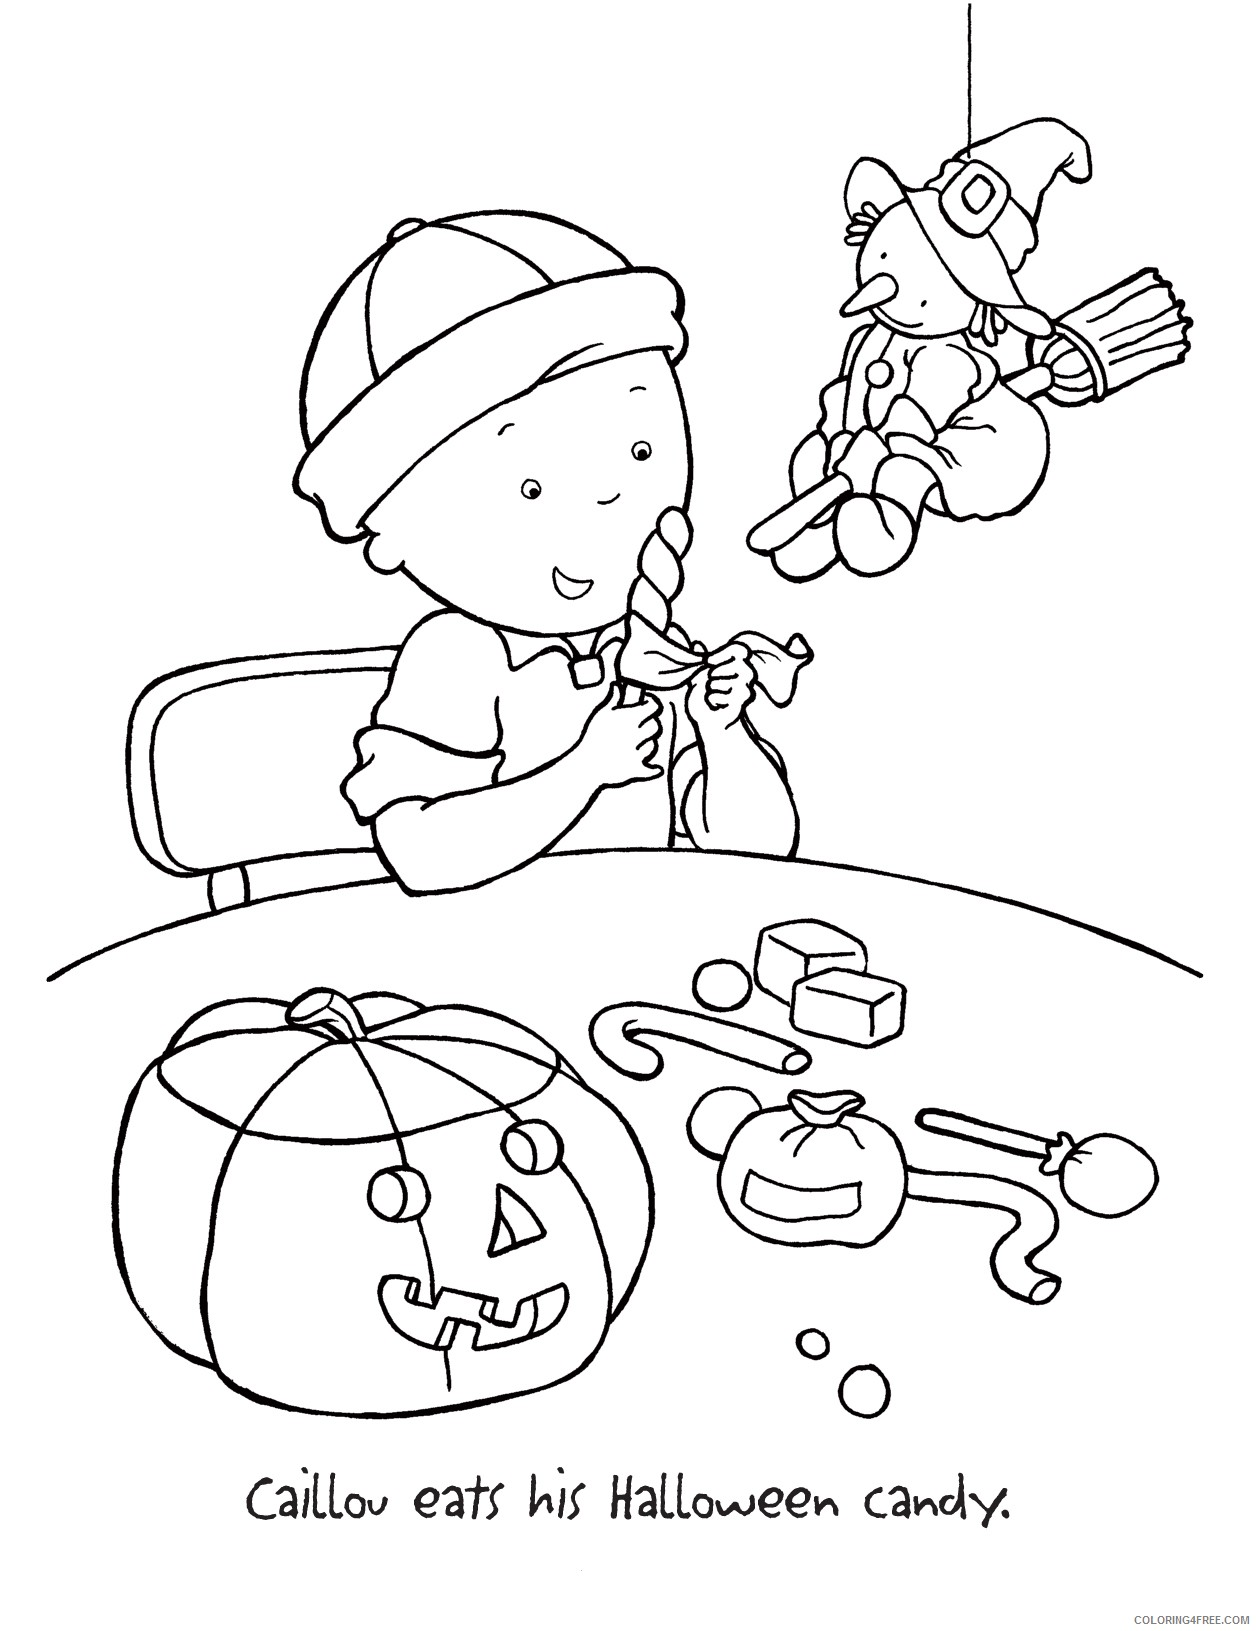 caillou coloring pages halloween Coloring4free